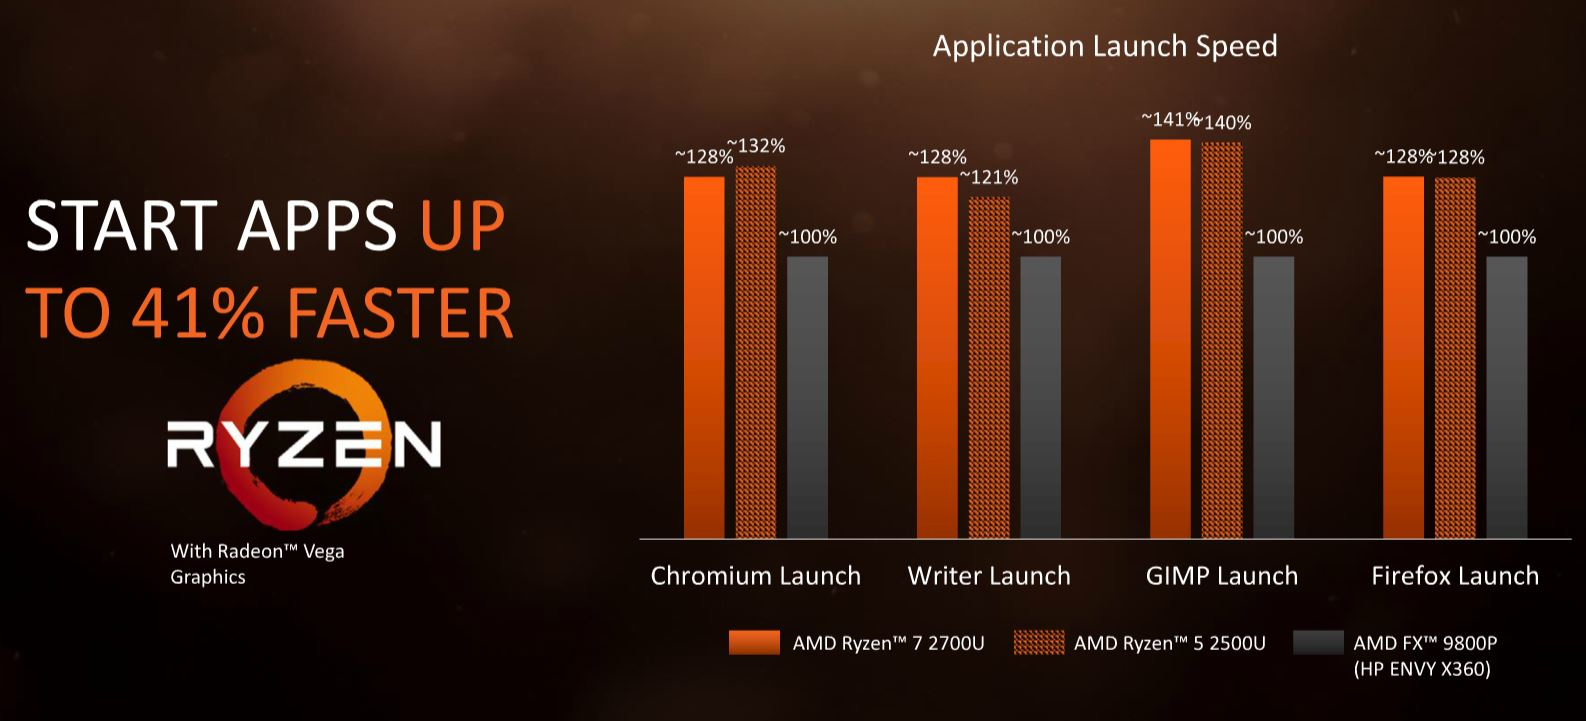 AMD Ryzen Mobile Application Launch Performance